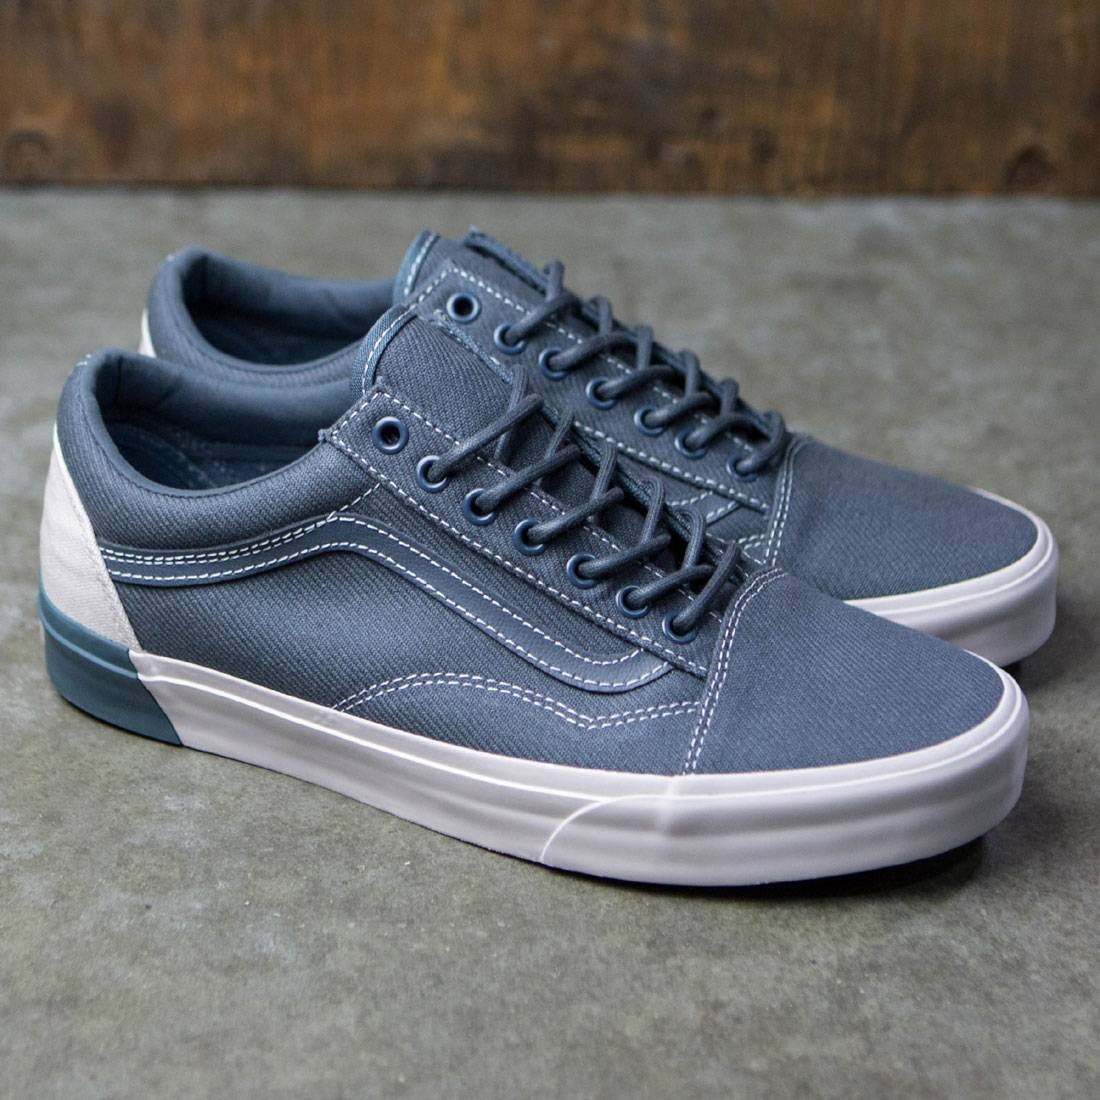 cc6f90c27f6bff Vans Men Old Skool DX - Blocked (gray  white)